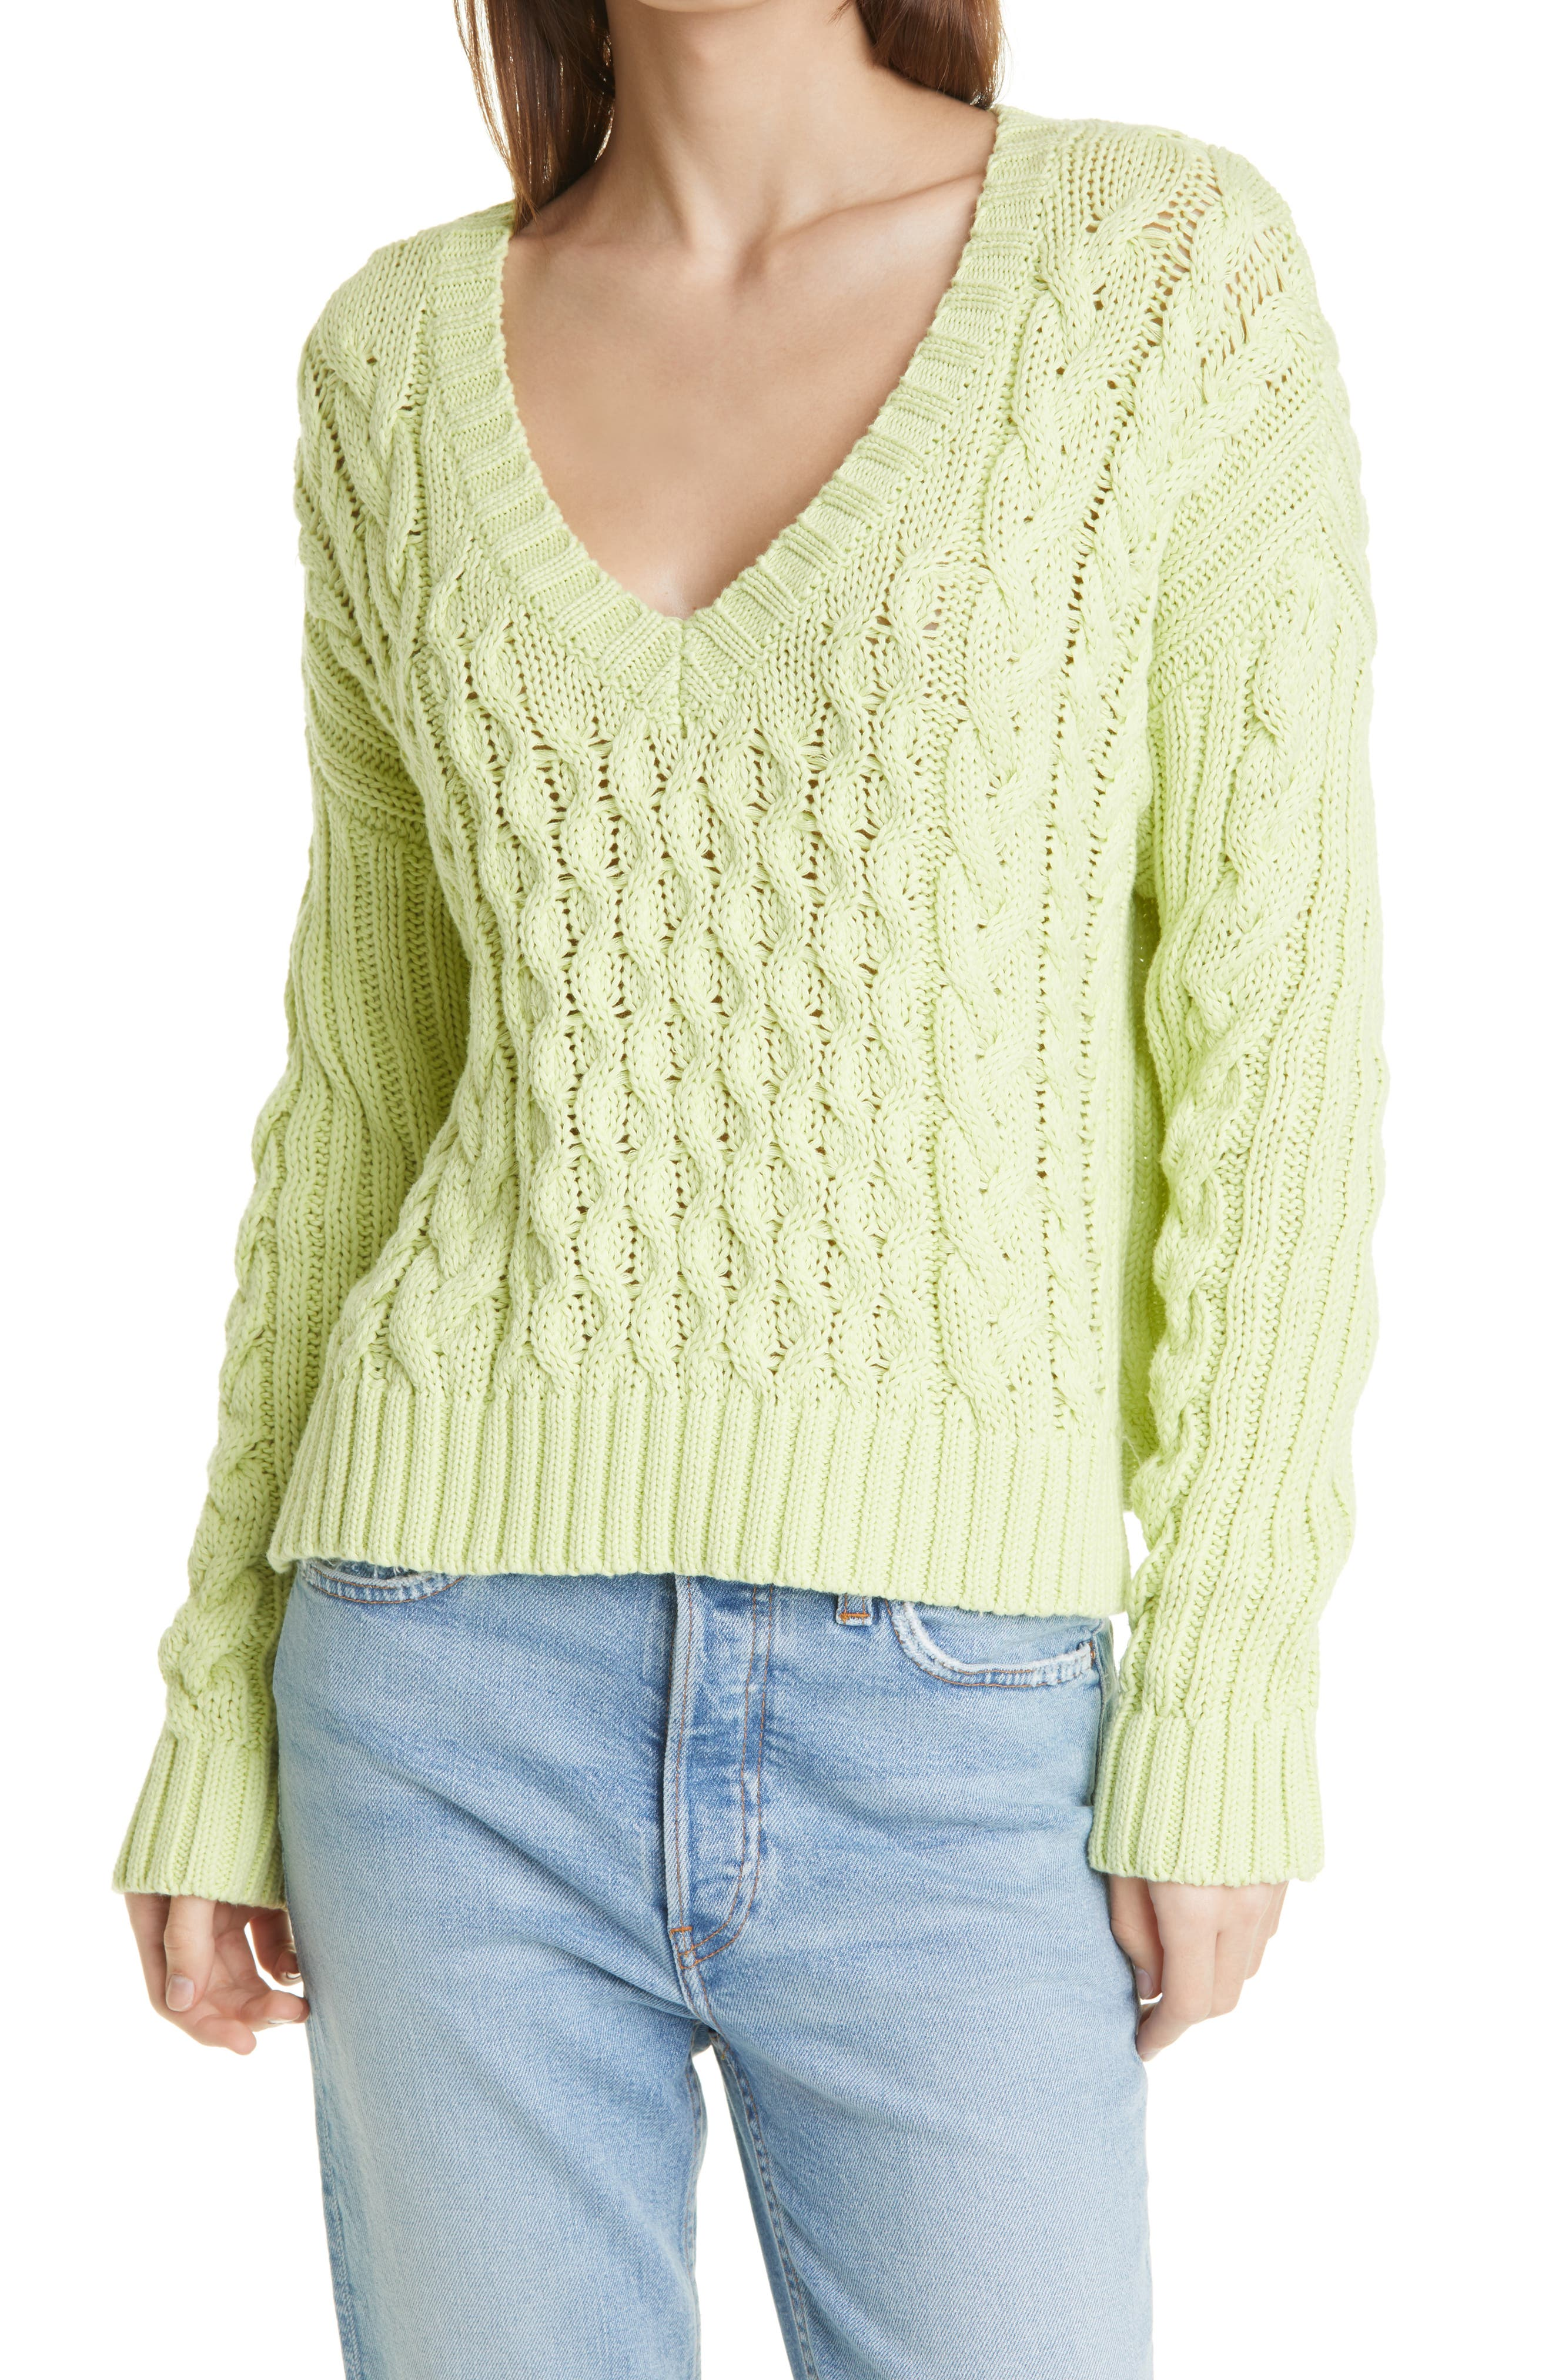 Leah V-Neck Cable Knit Sweater